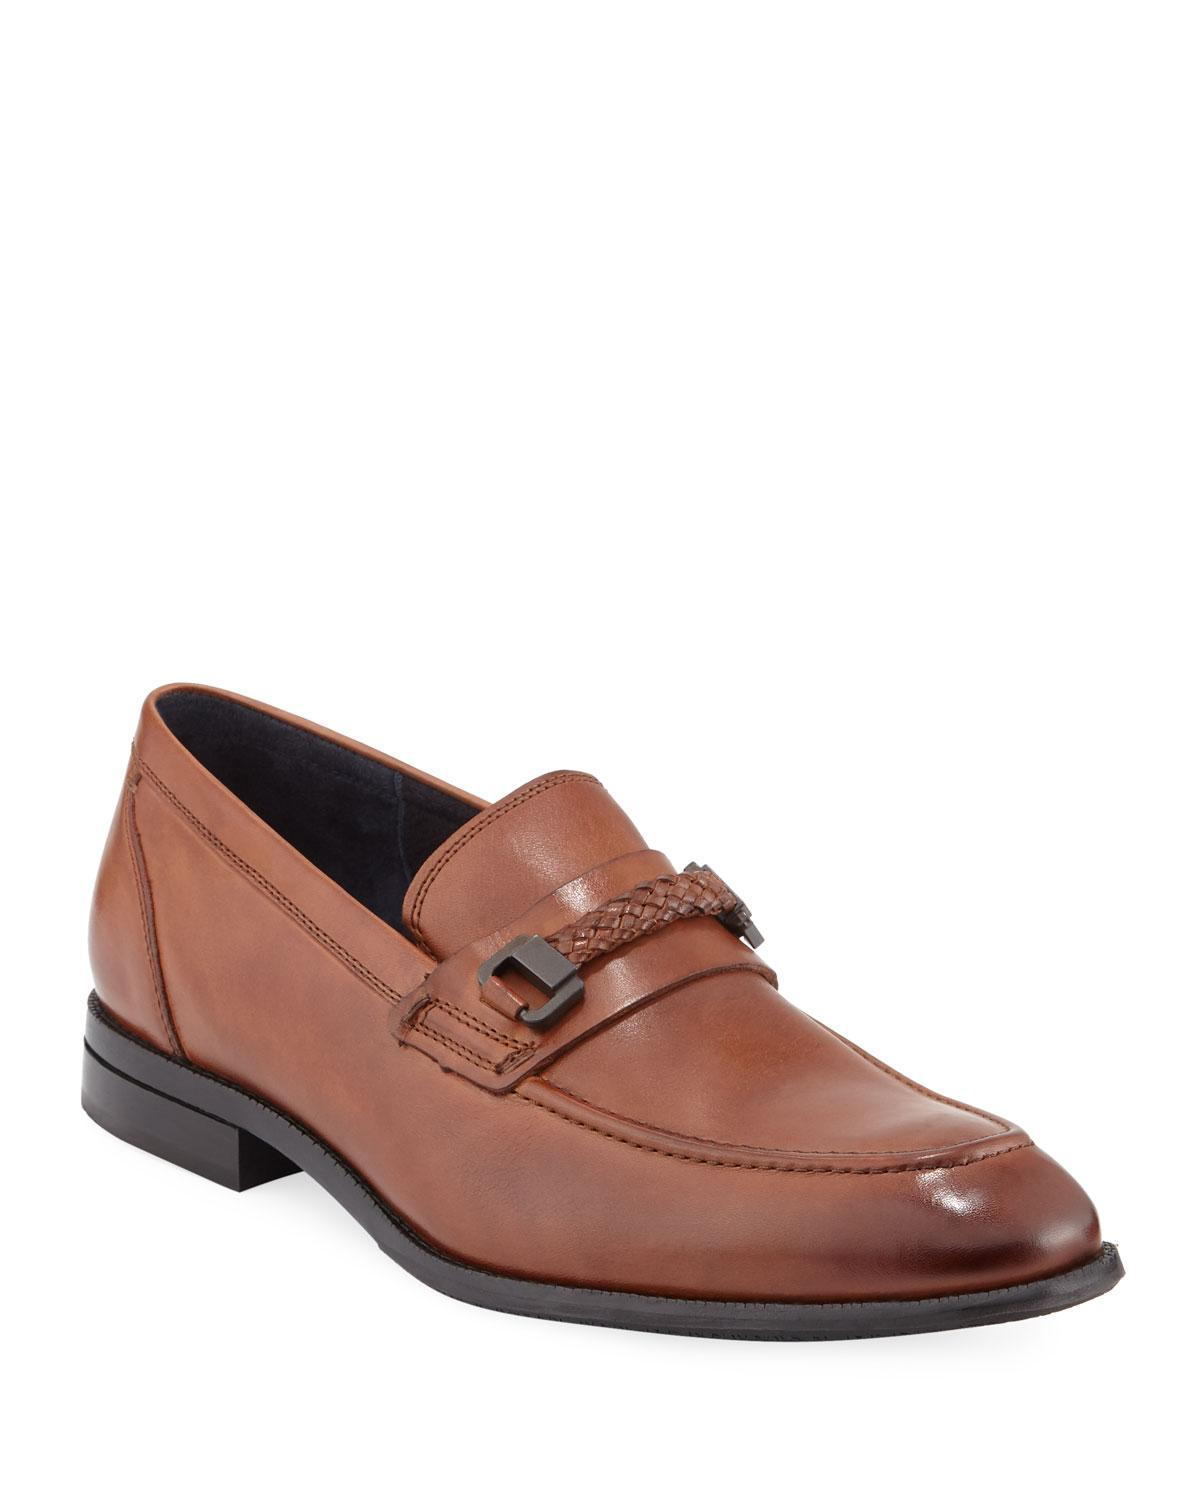 5fac25582cb Lyst - Cole Haan Men s Williams Grand Bit Loafers in Brown for Men